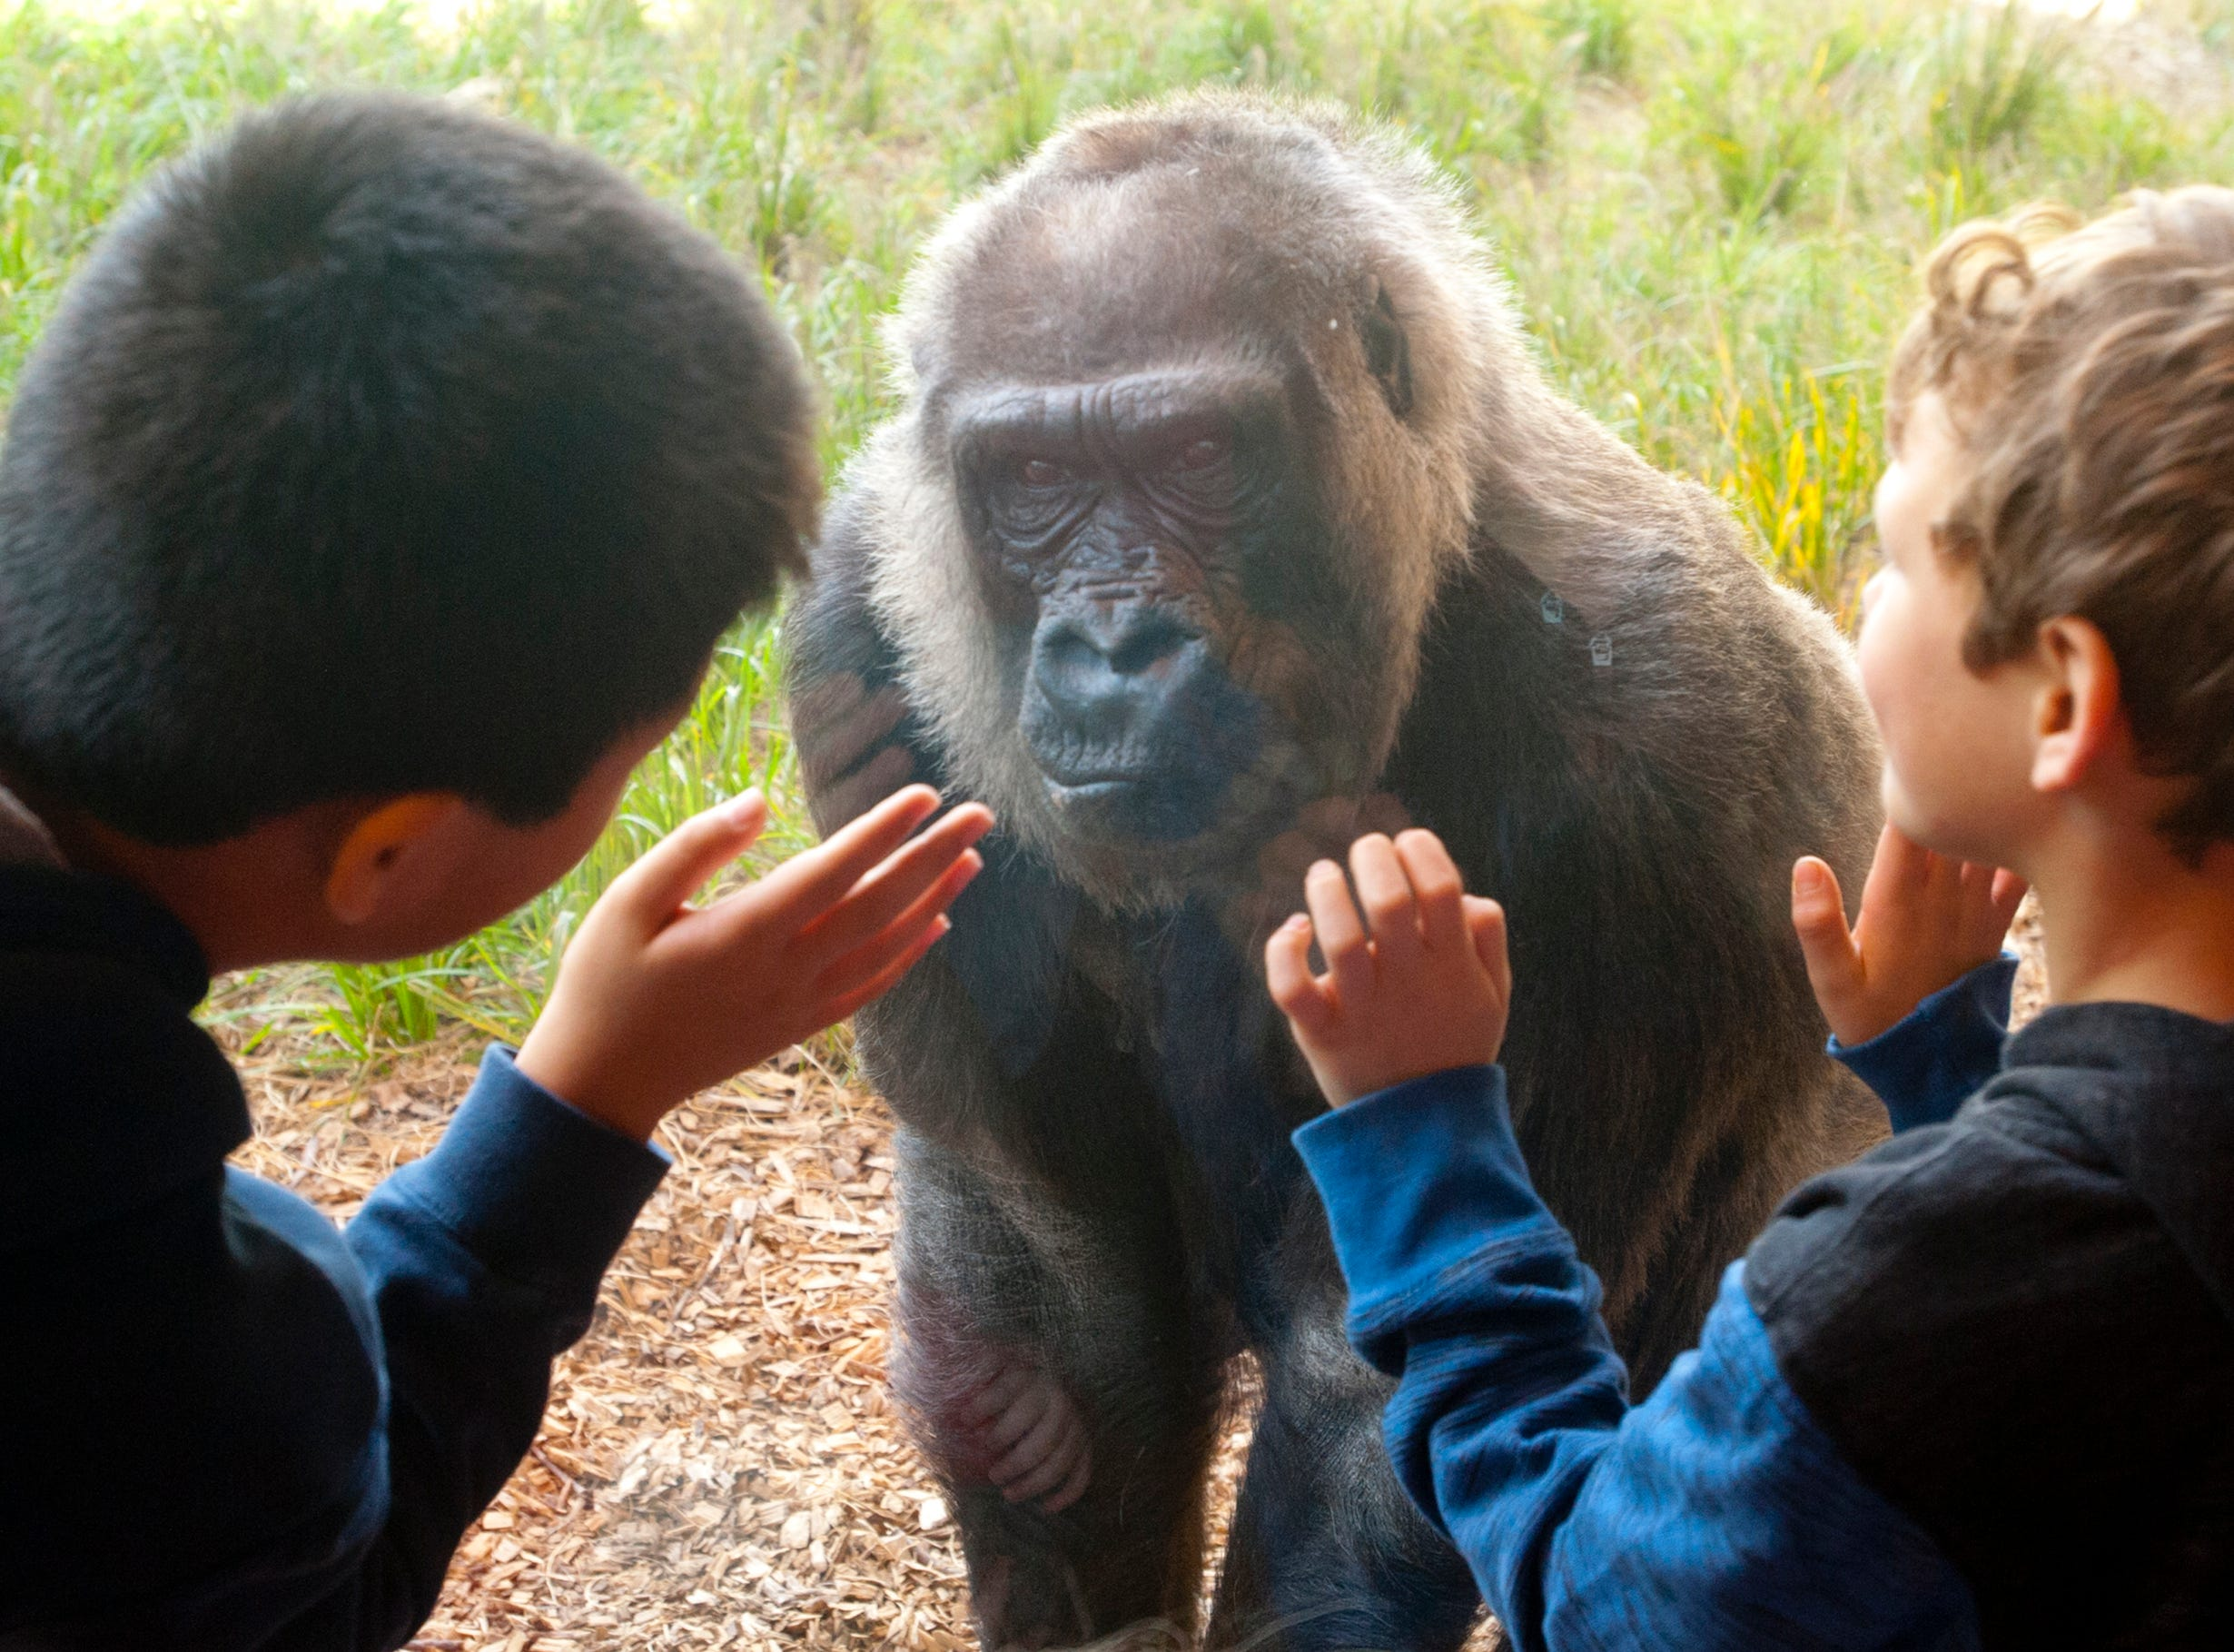 Children separated by a thick plate glass get a close look at Helen, 60, the second oldest gorilla in North America under management. November 04, 2018